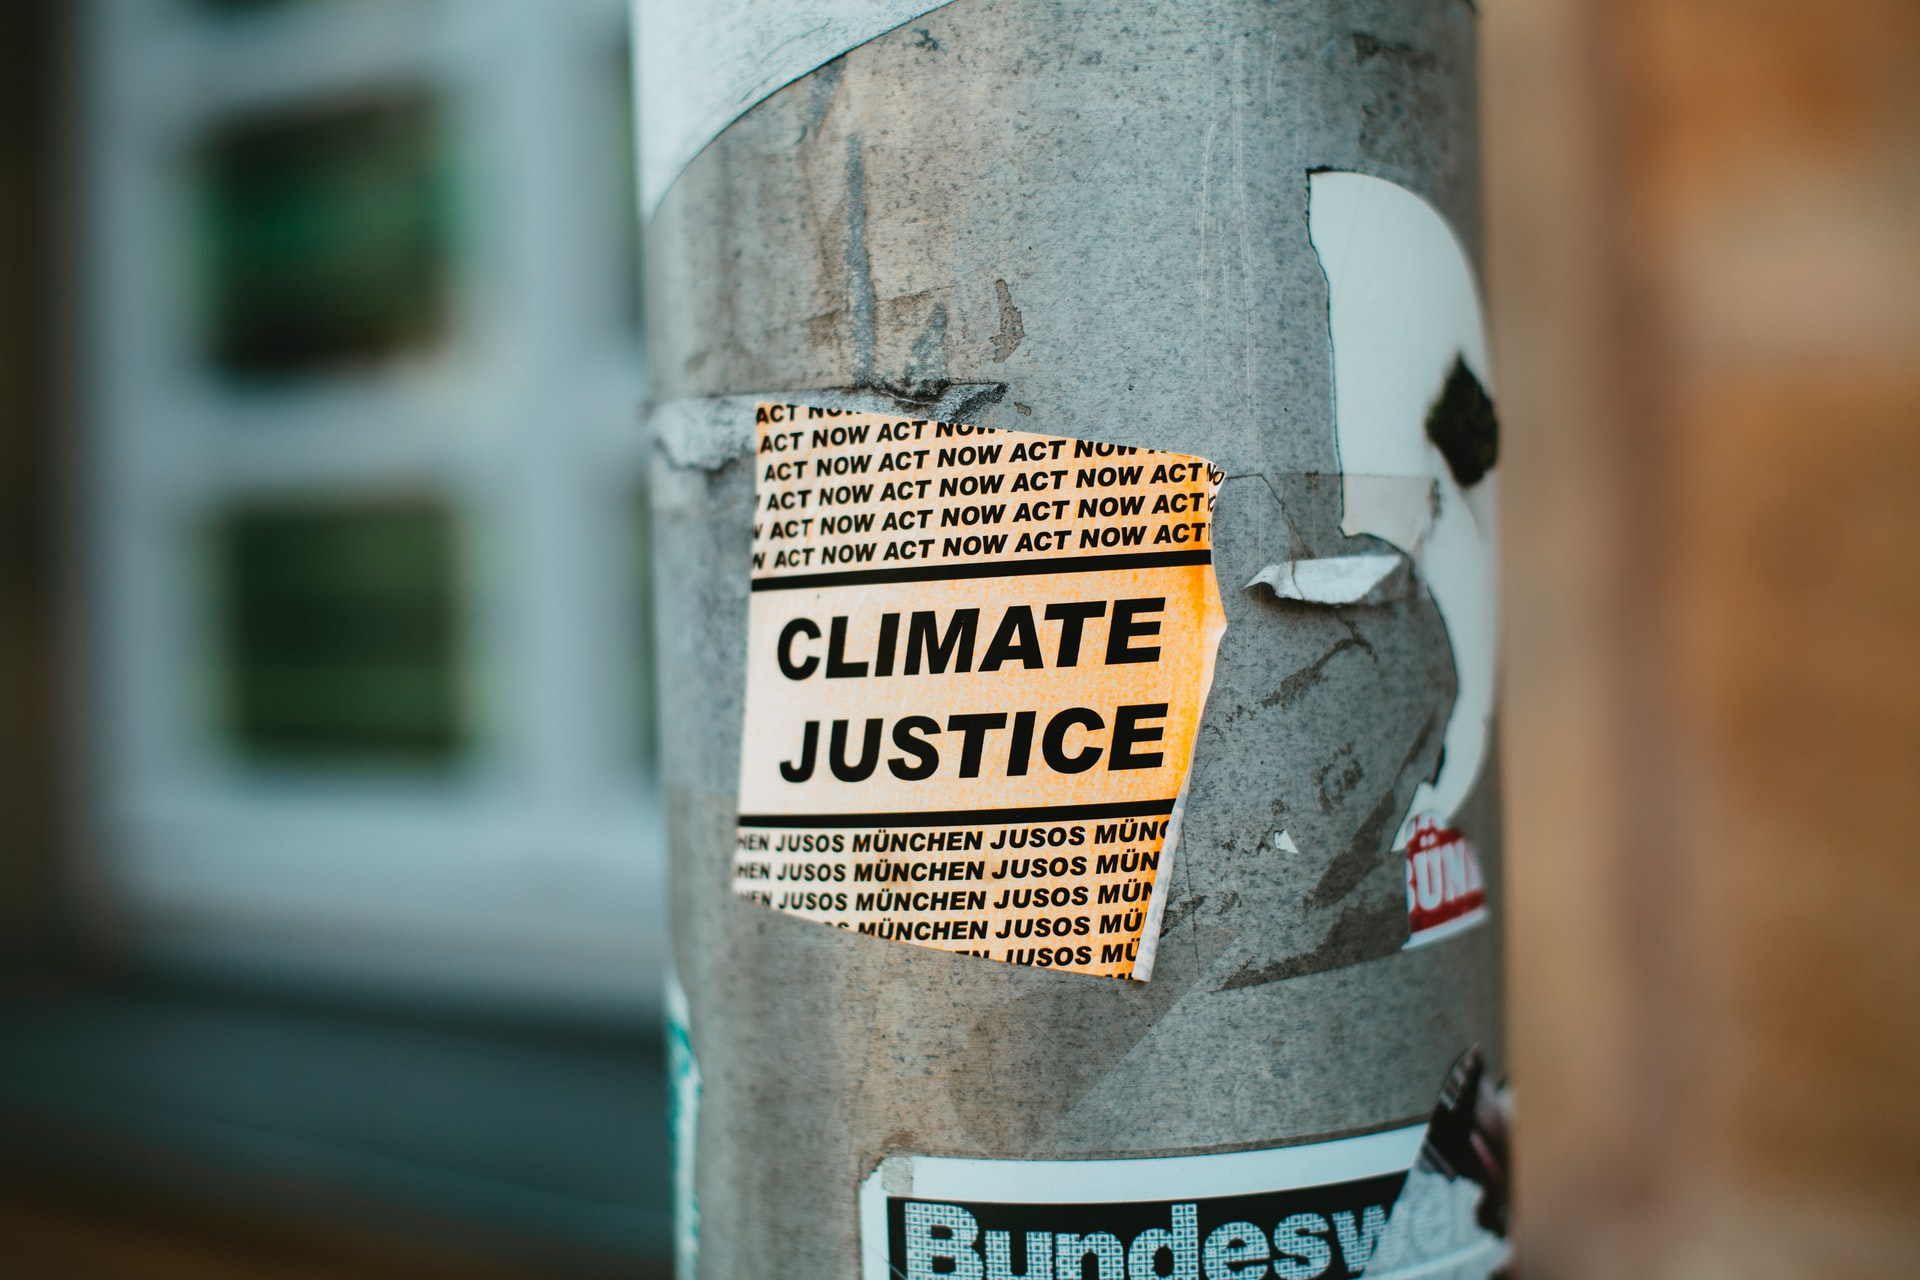 Climate Sticker on Lamppost